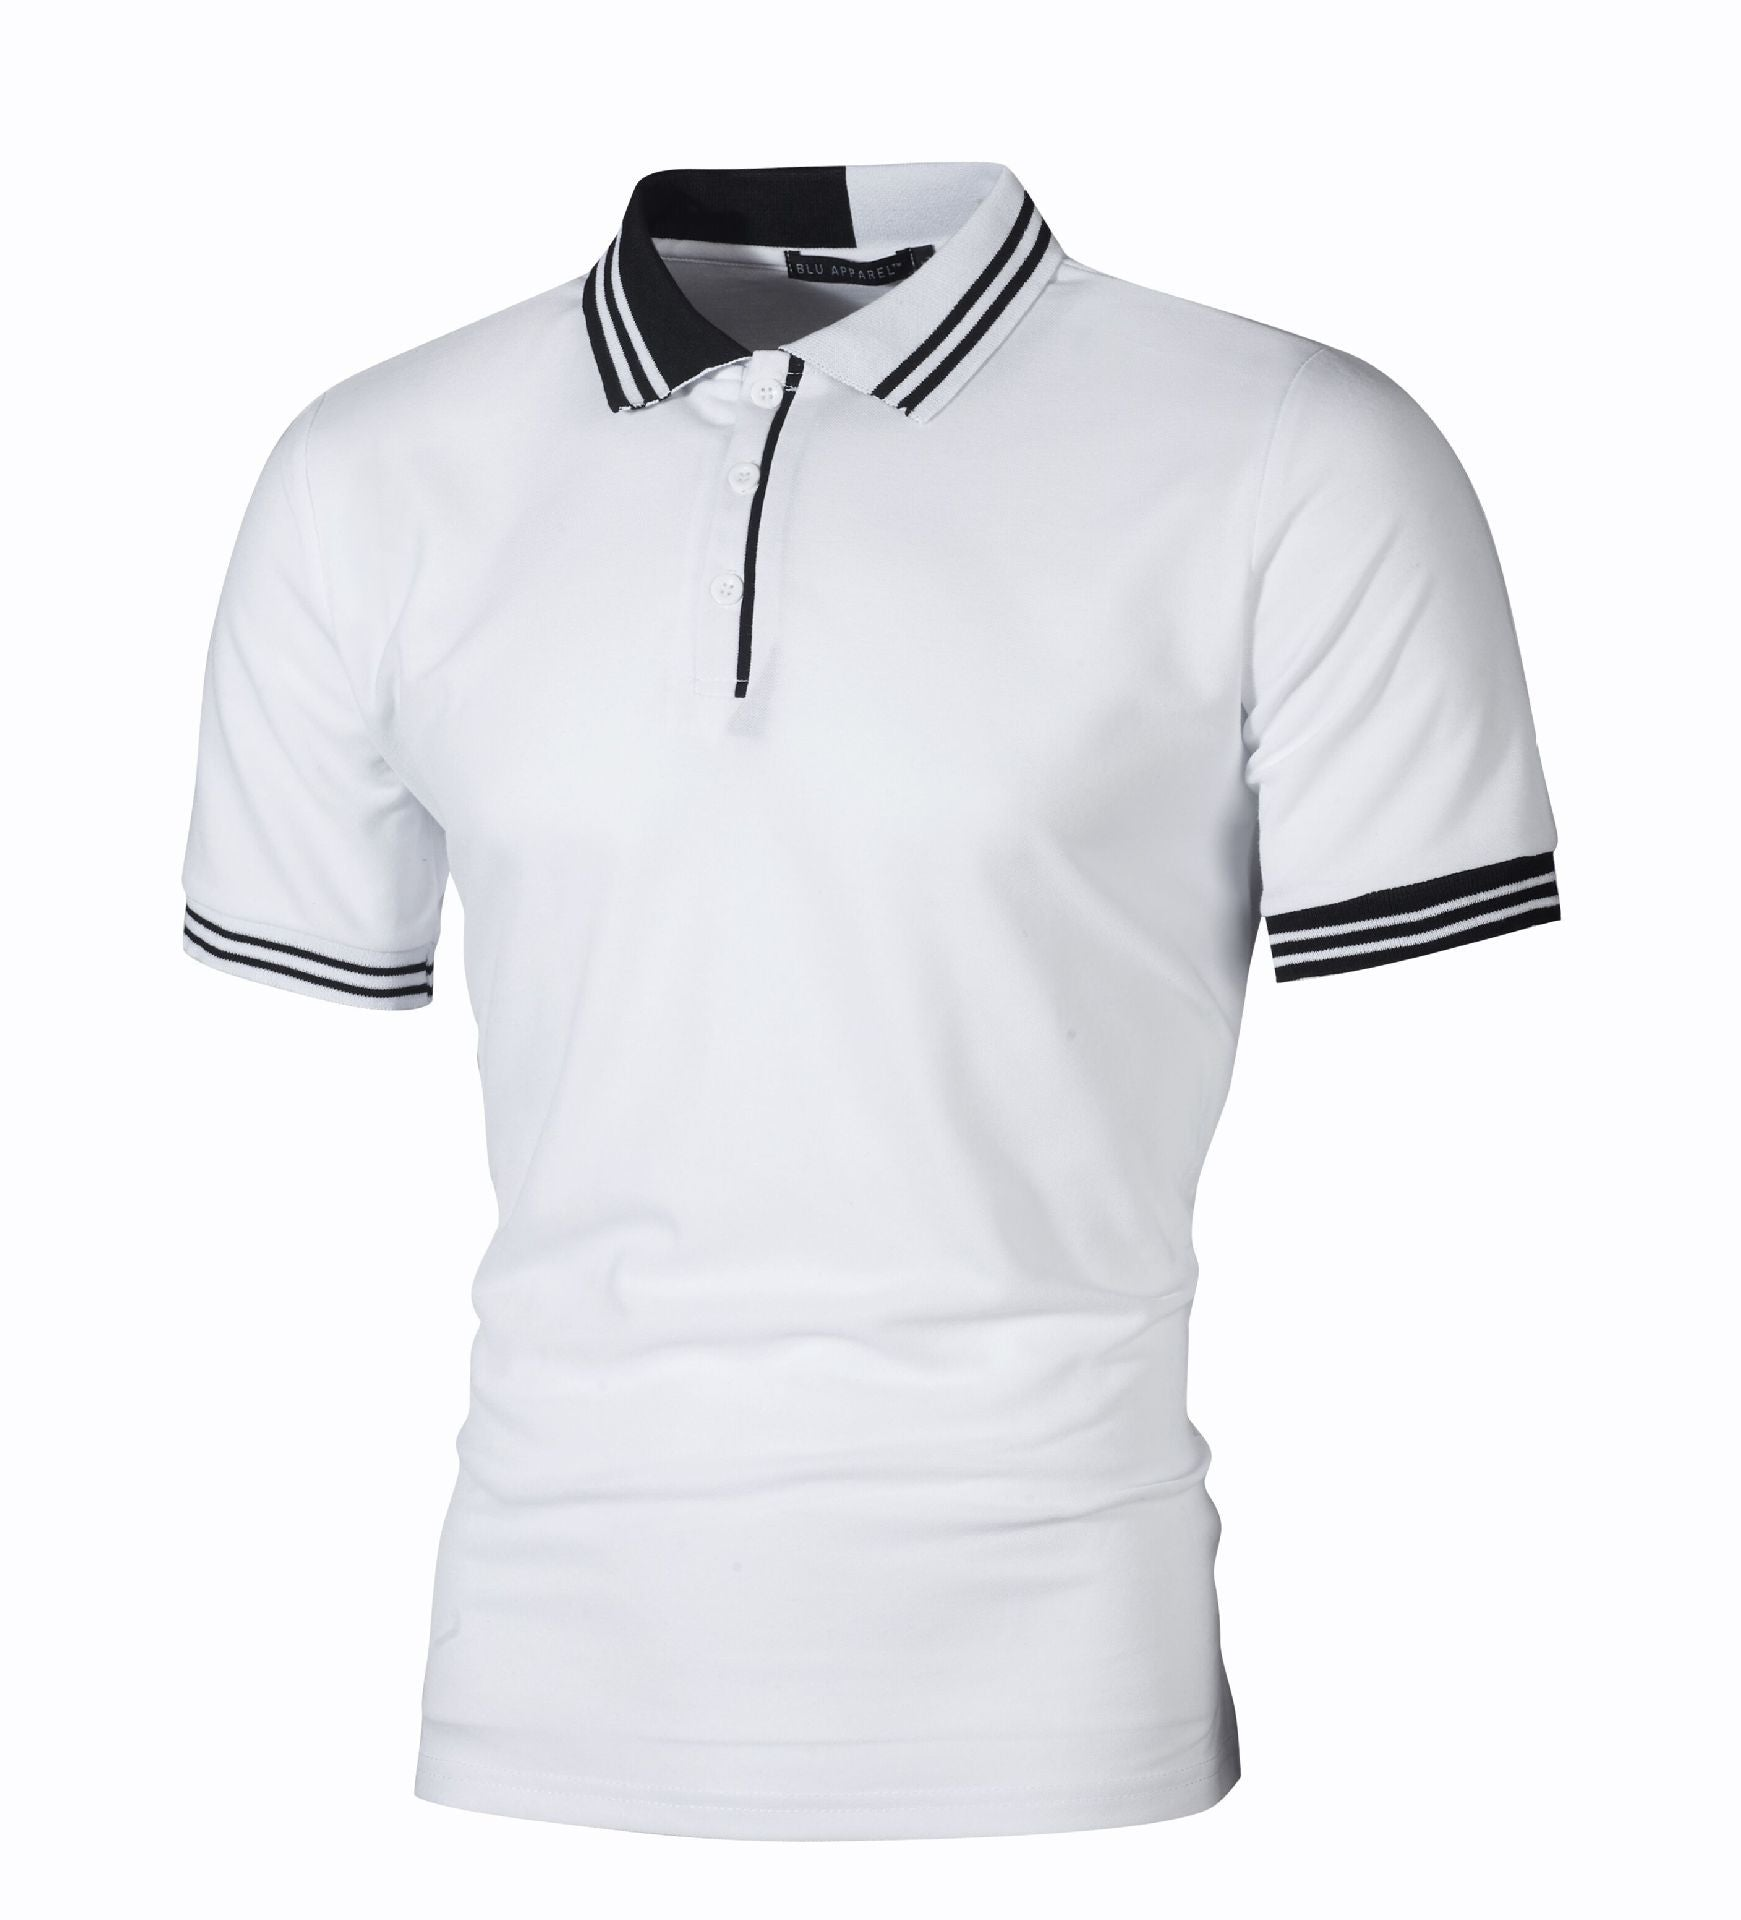 Men's New In Fashion POLO Shirts